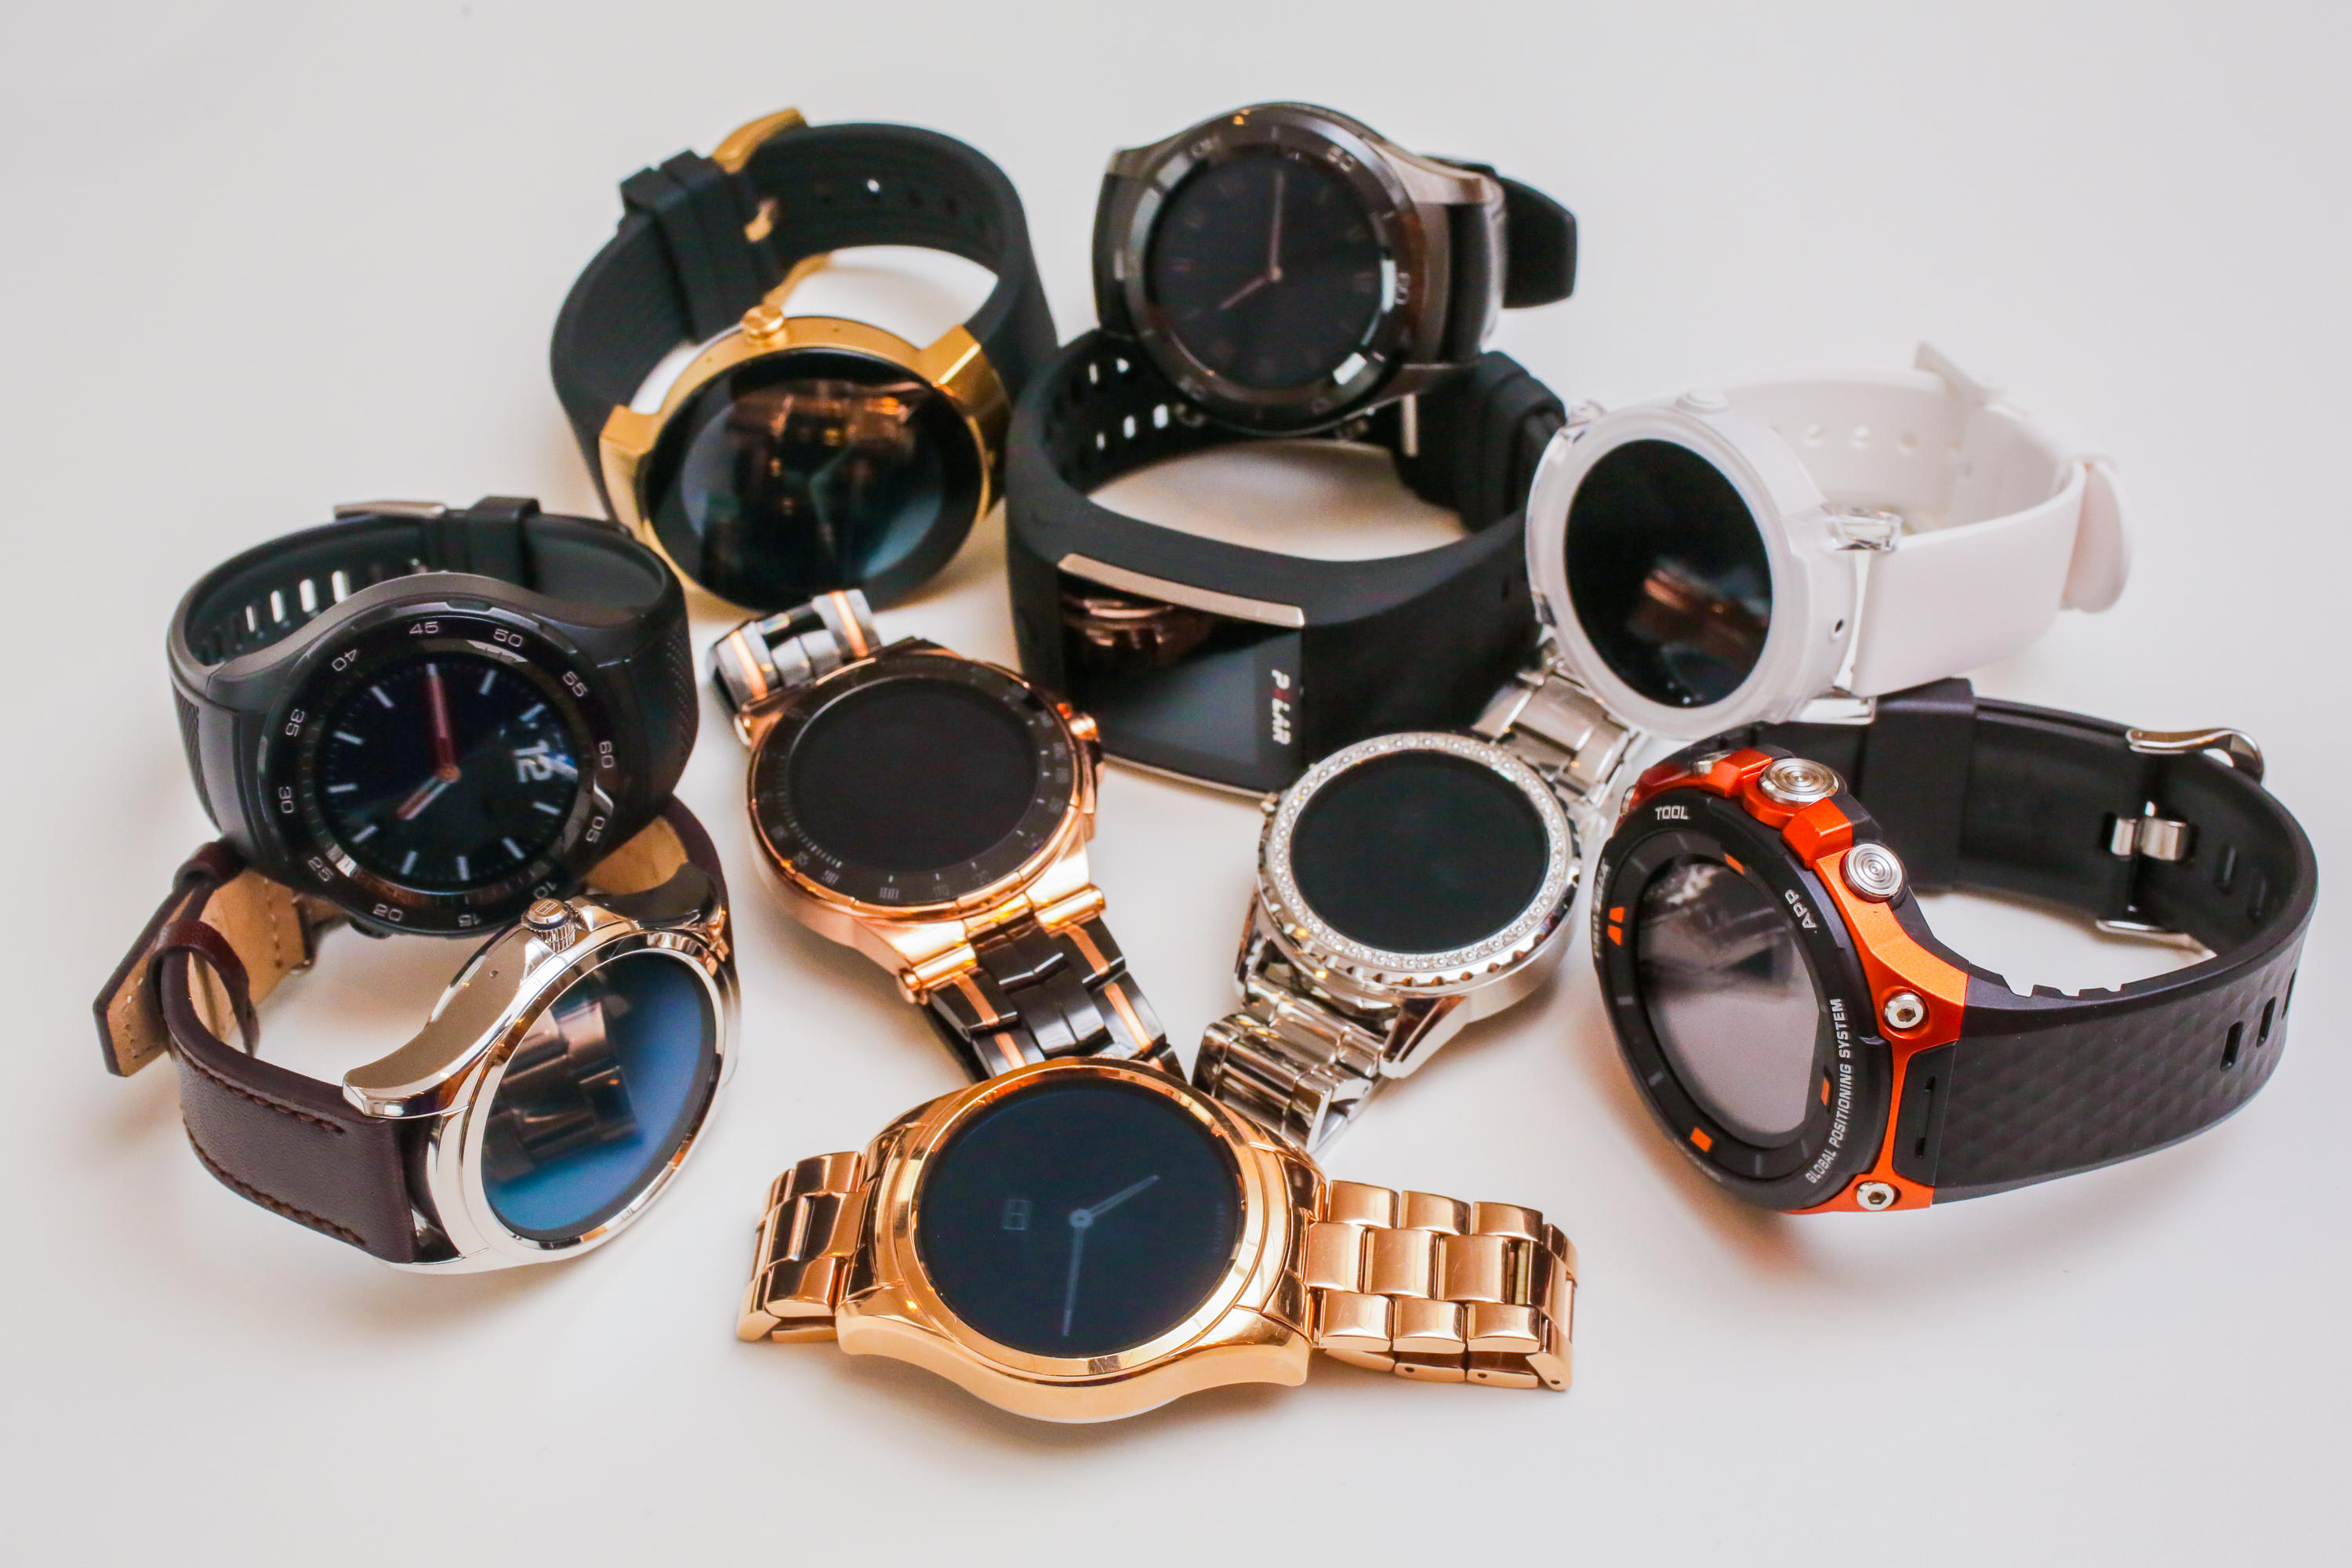 android-wear-group-shot-2017-02